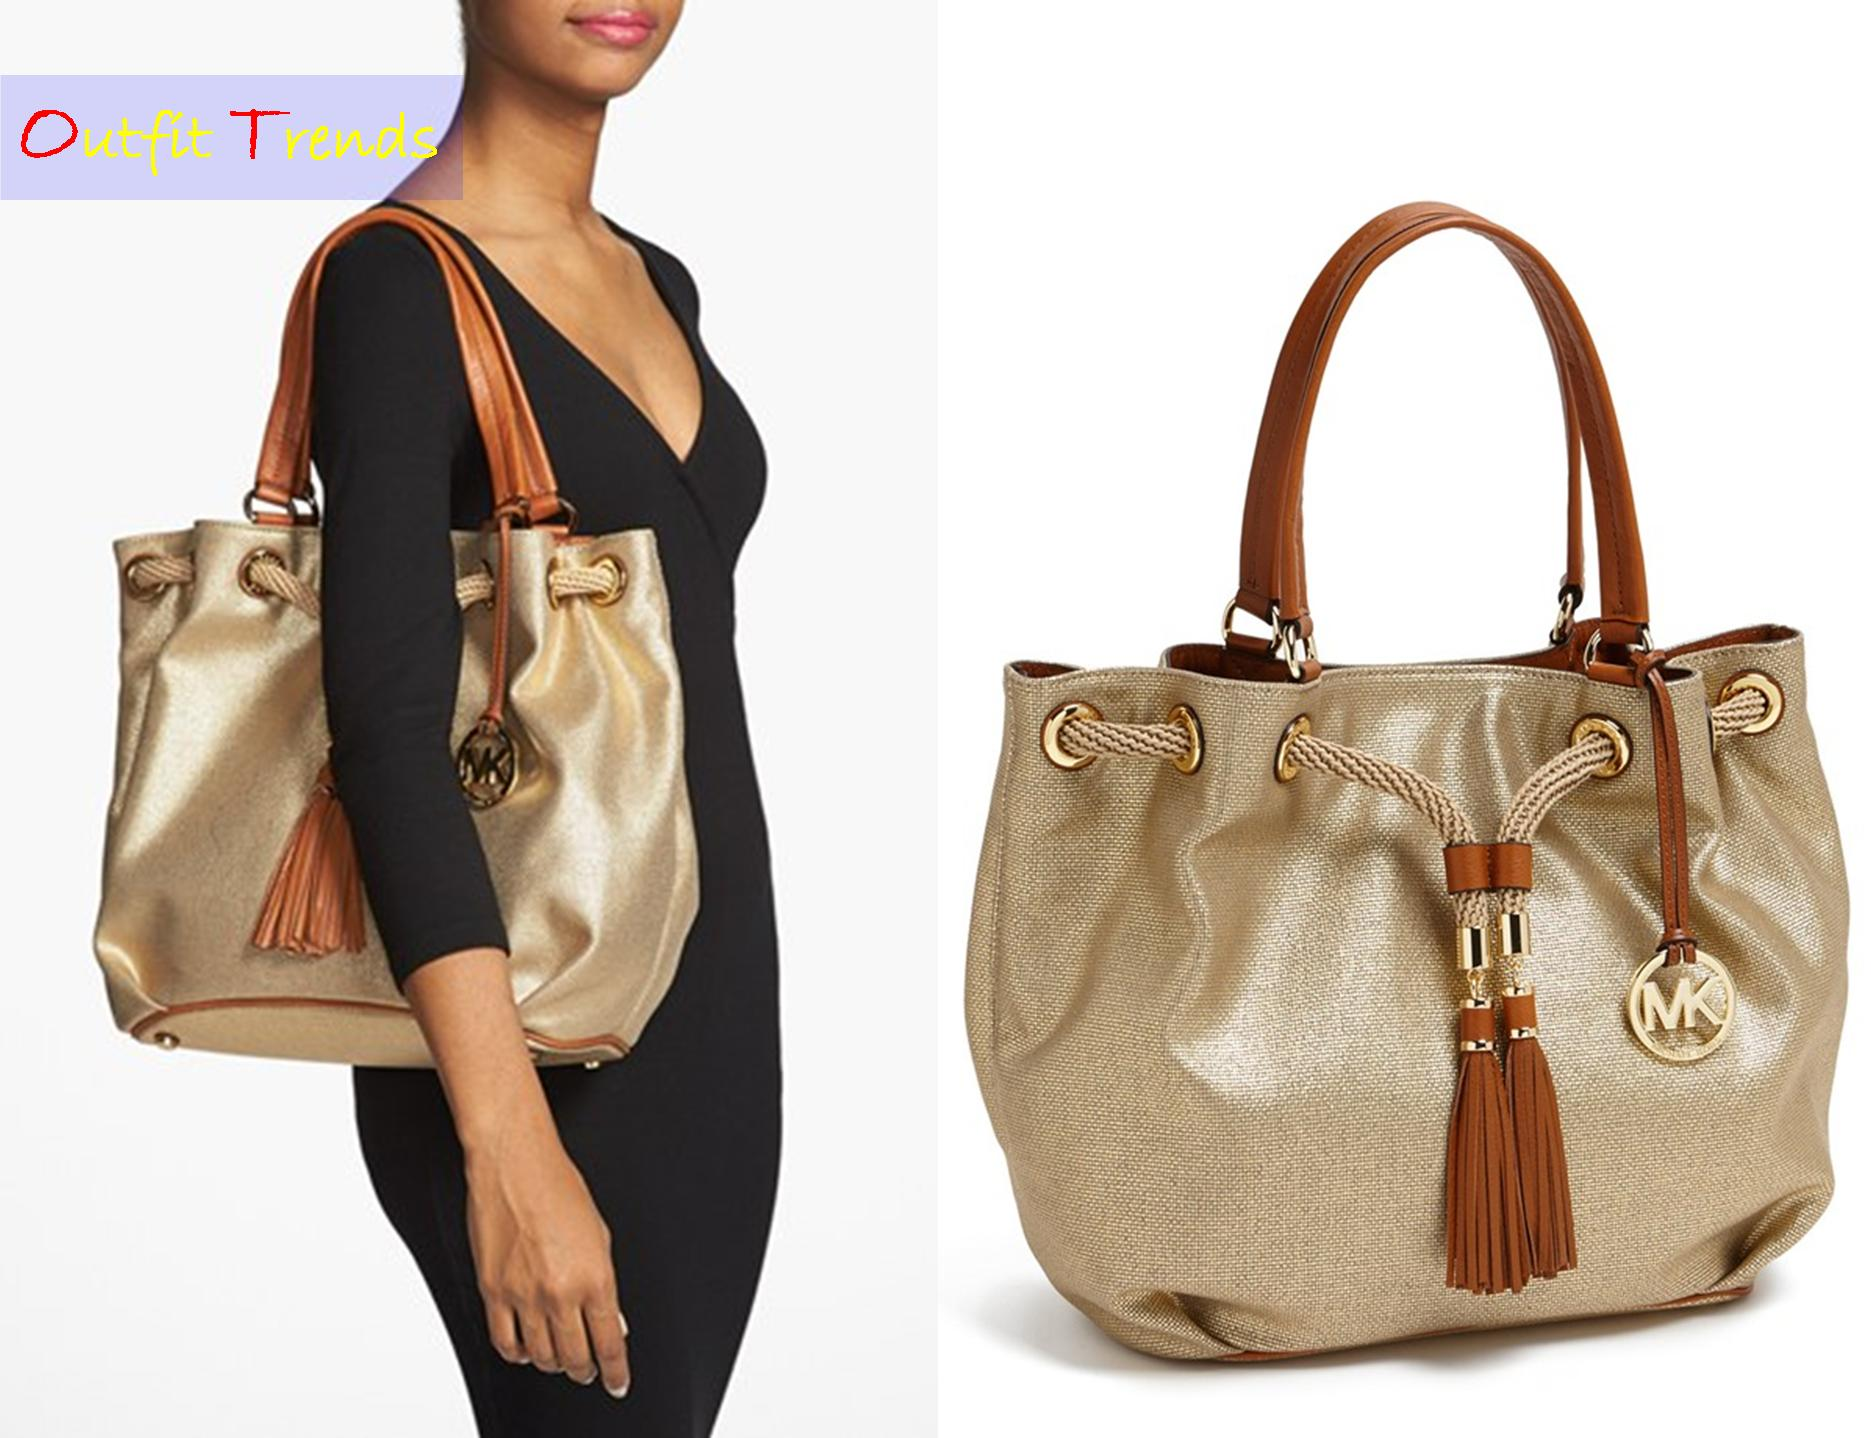 Michael-Kors-Latest-Tote 13 Most Fashionable and Stylish Tote Bags for Women